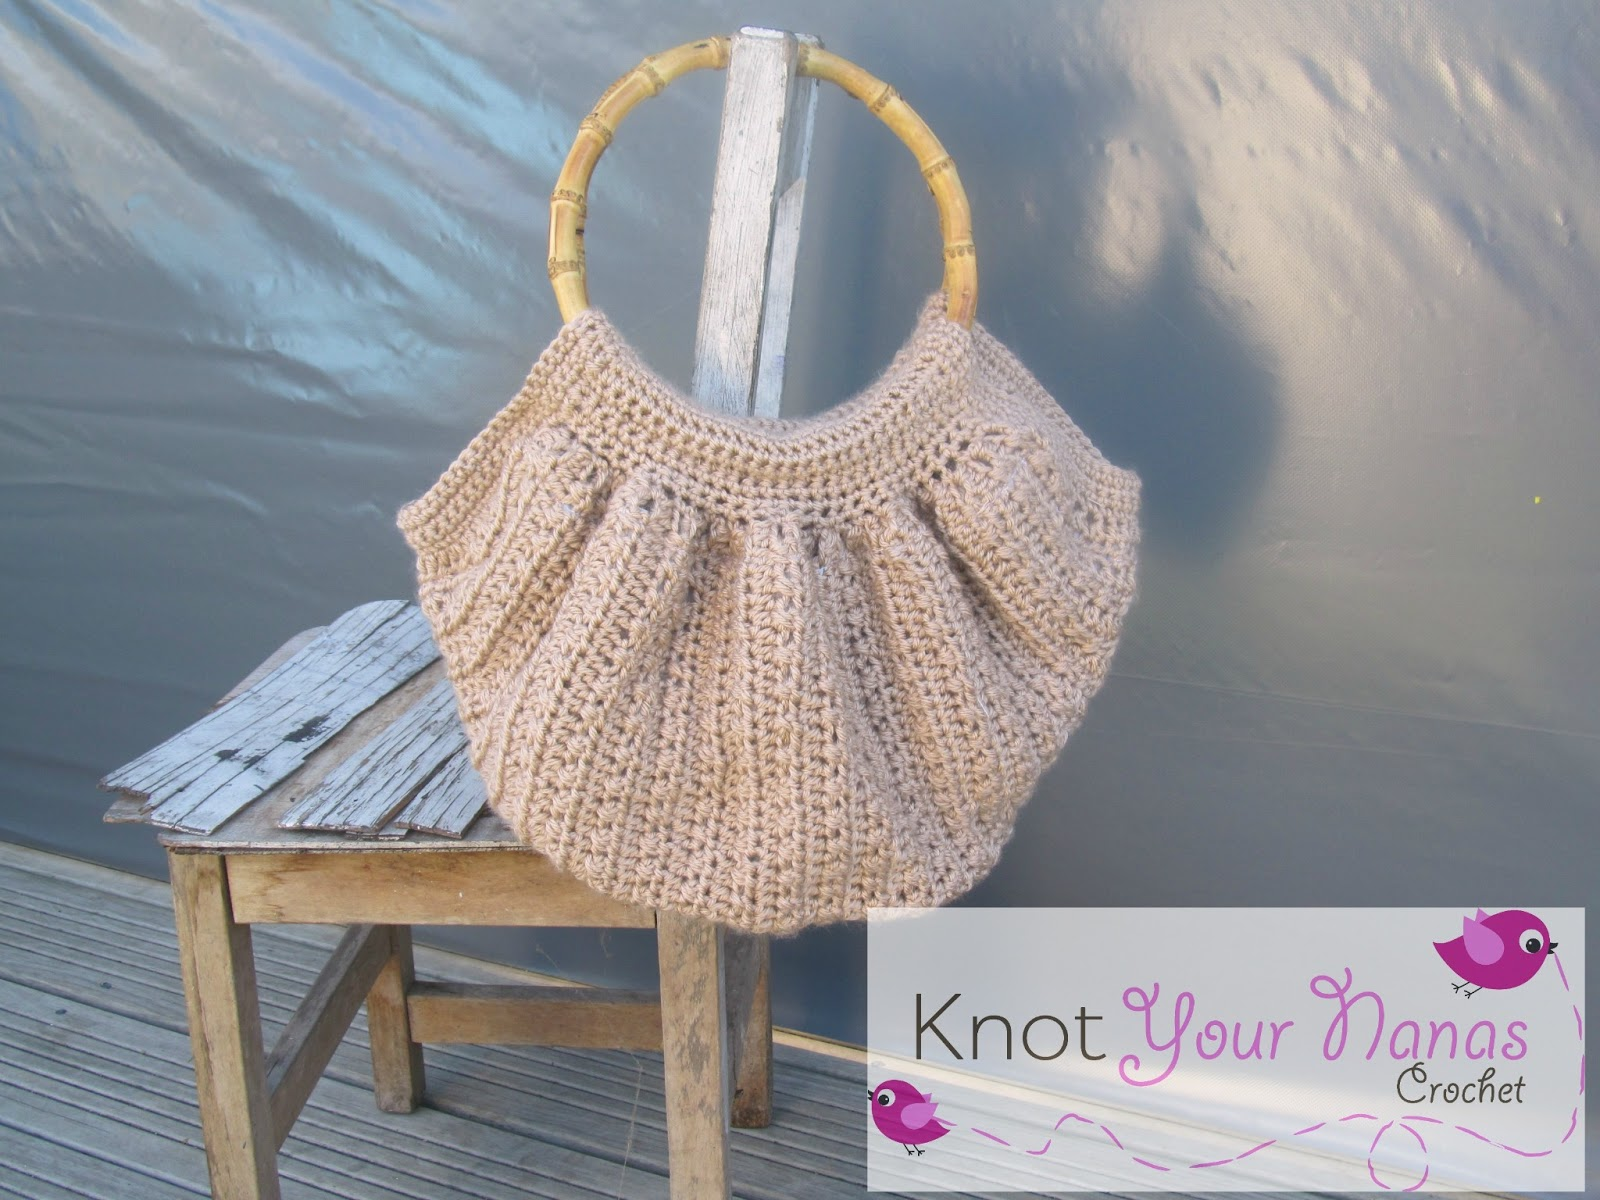 Crochet Bag Bamboo Handles Pattern : Knot Your Nanas Crochet: Crochet Fat Bag with Bamboo Handles